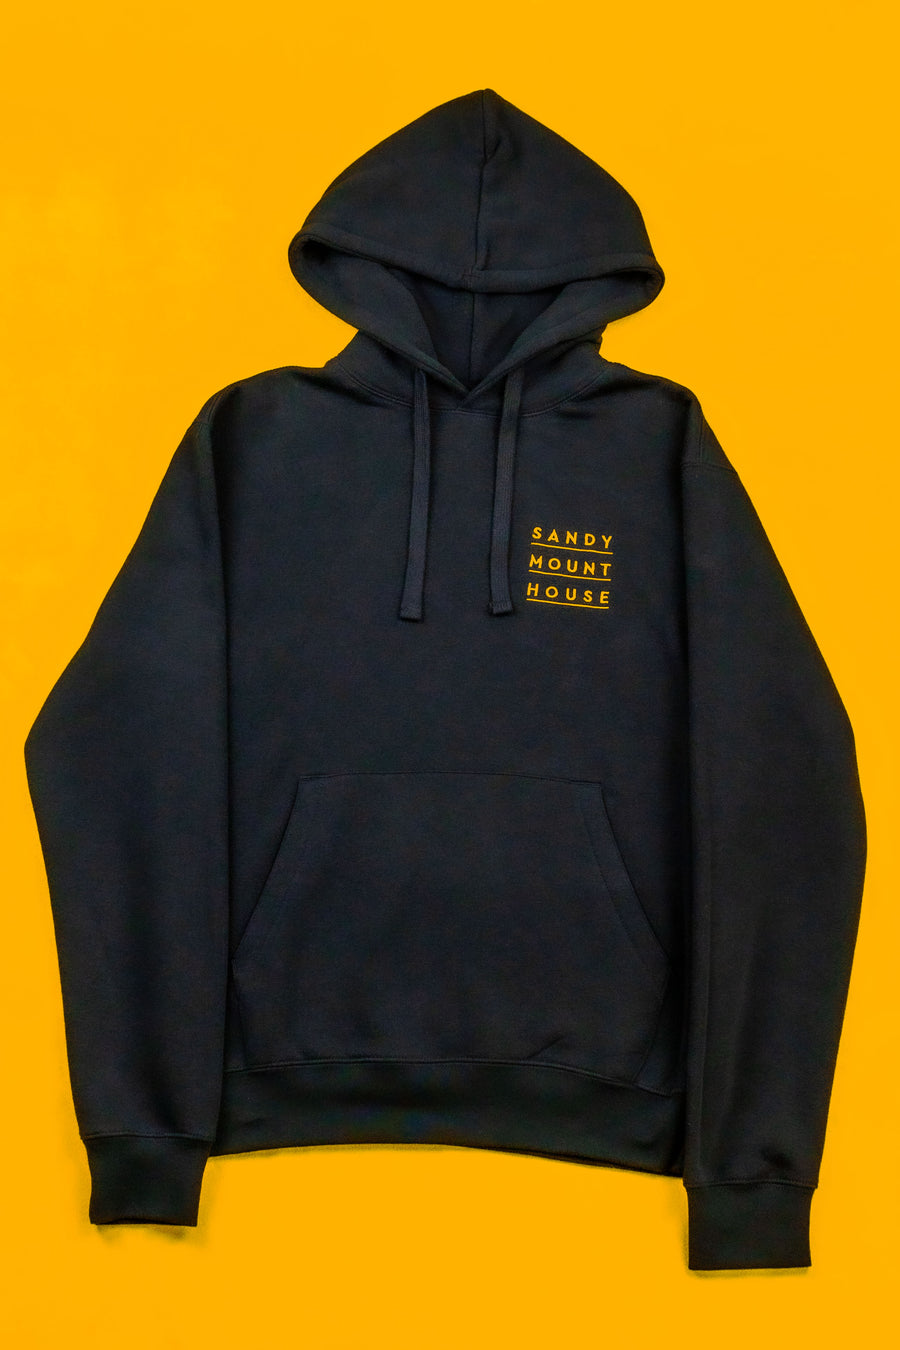 Authentic SMH Hooded Sweatshirt